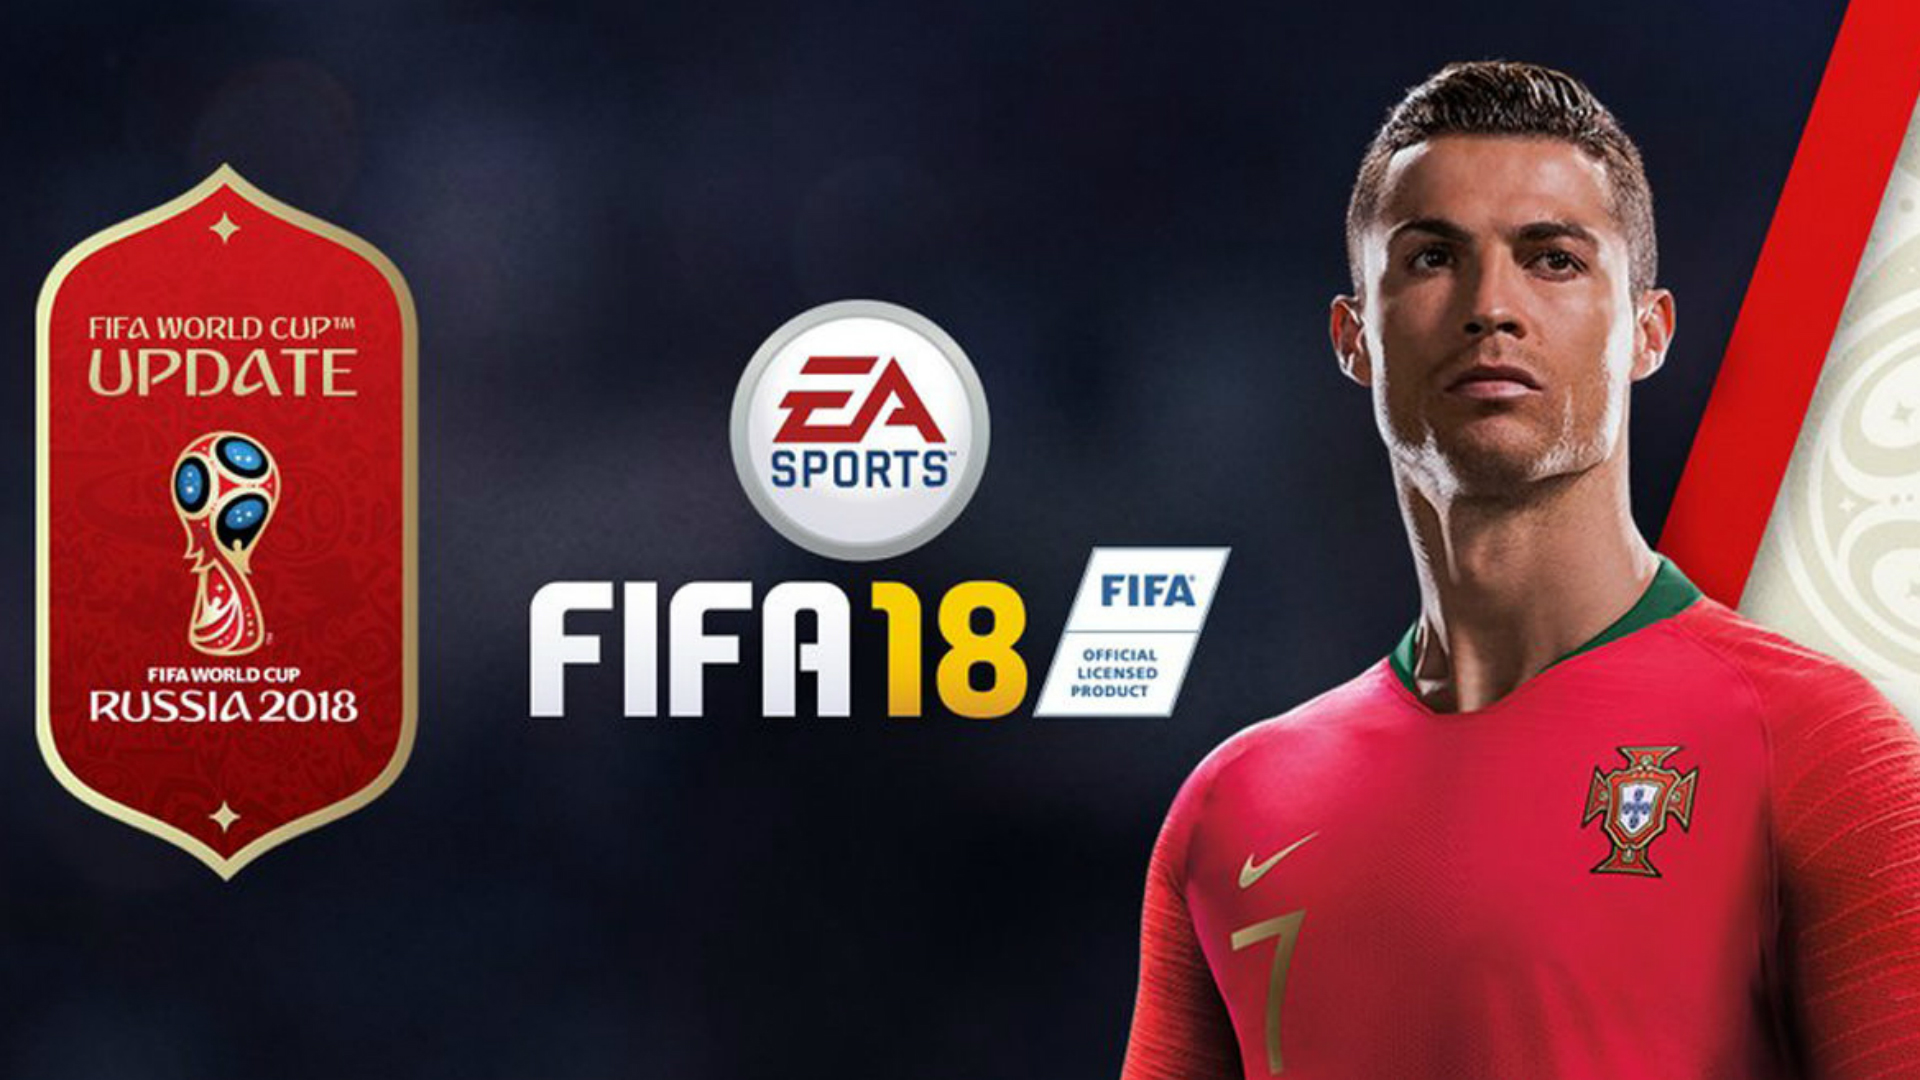 ea sports fifa 18 world cup